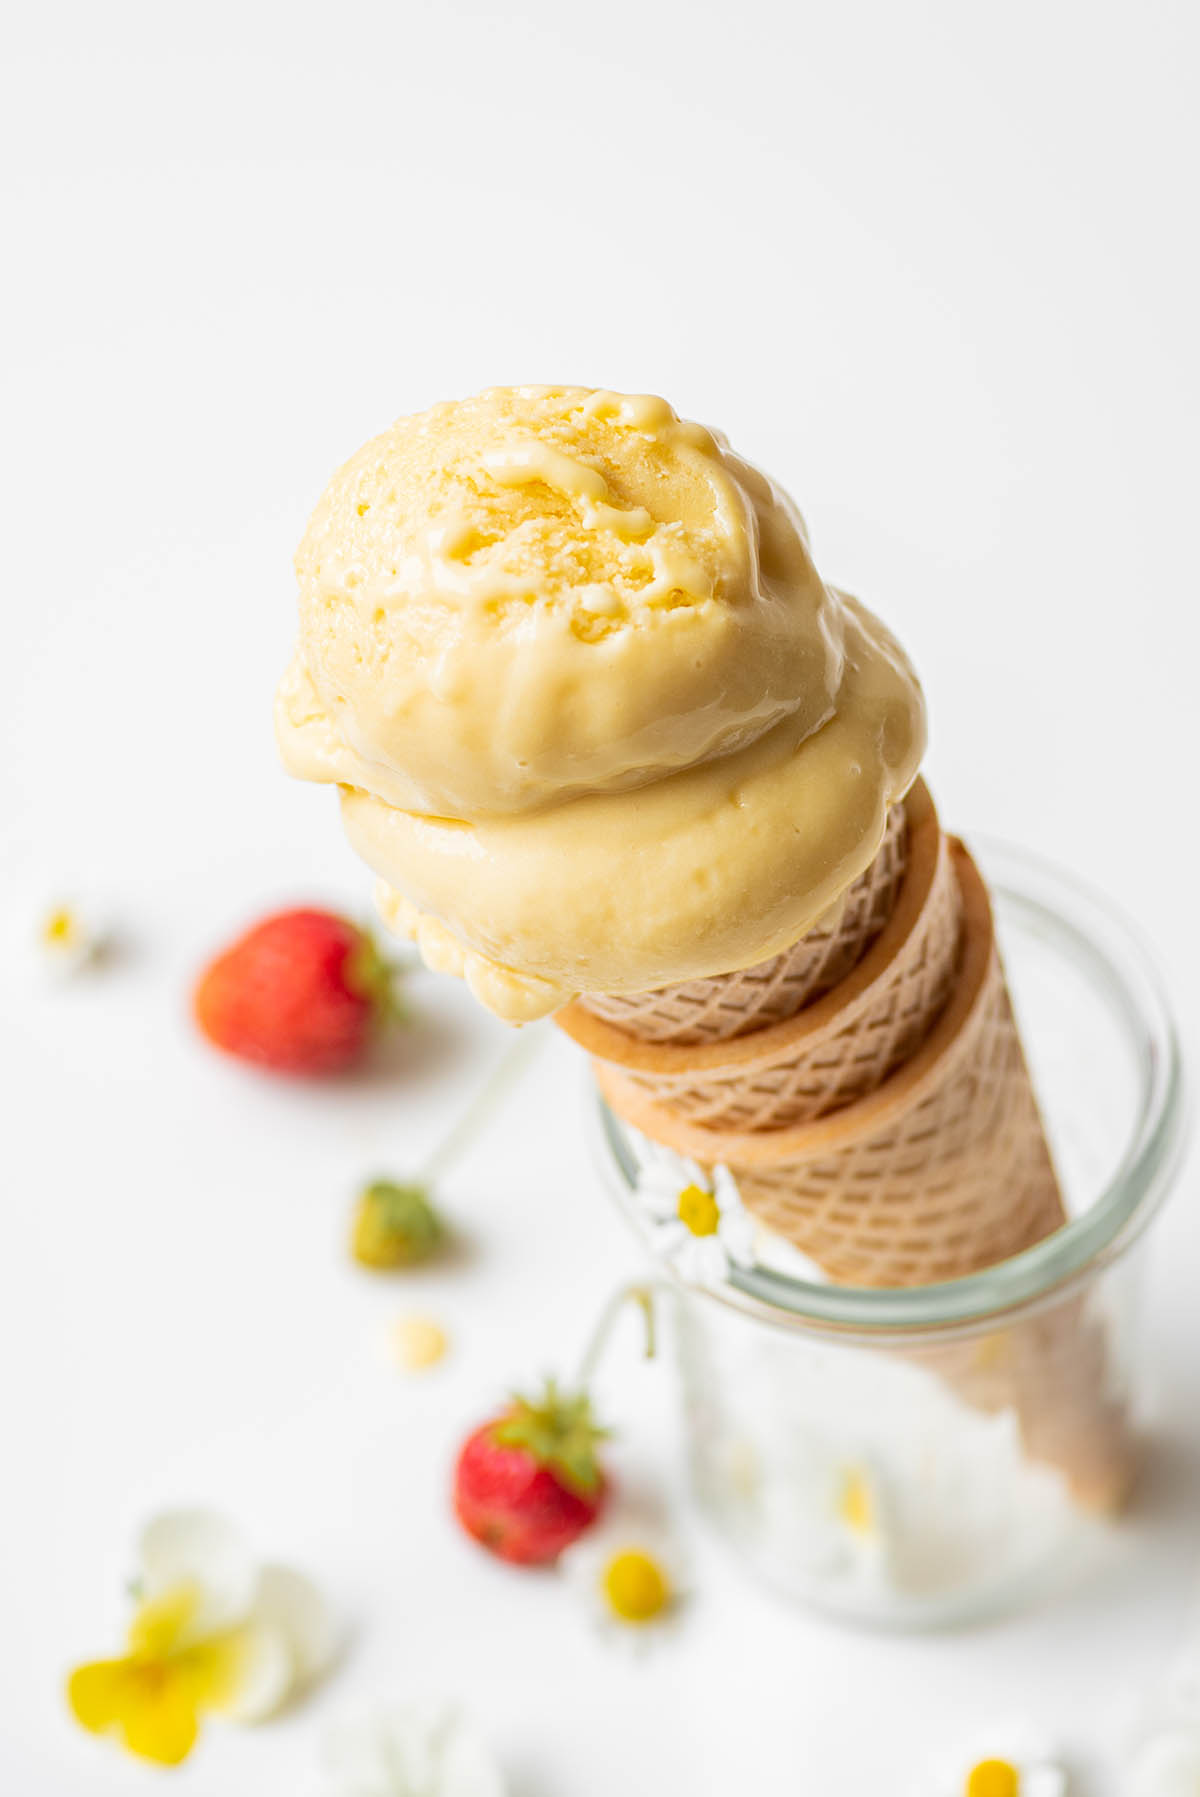 Close up of two scoops of ice cream on a stack of cones.